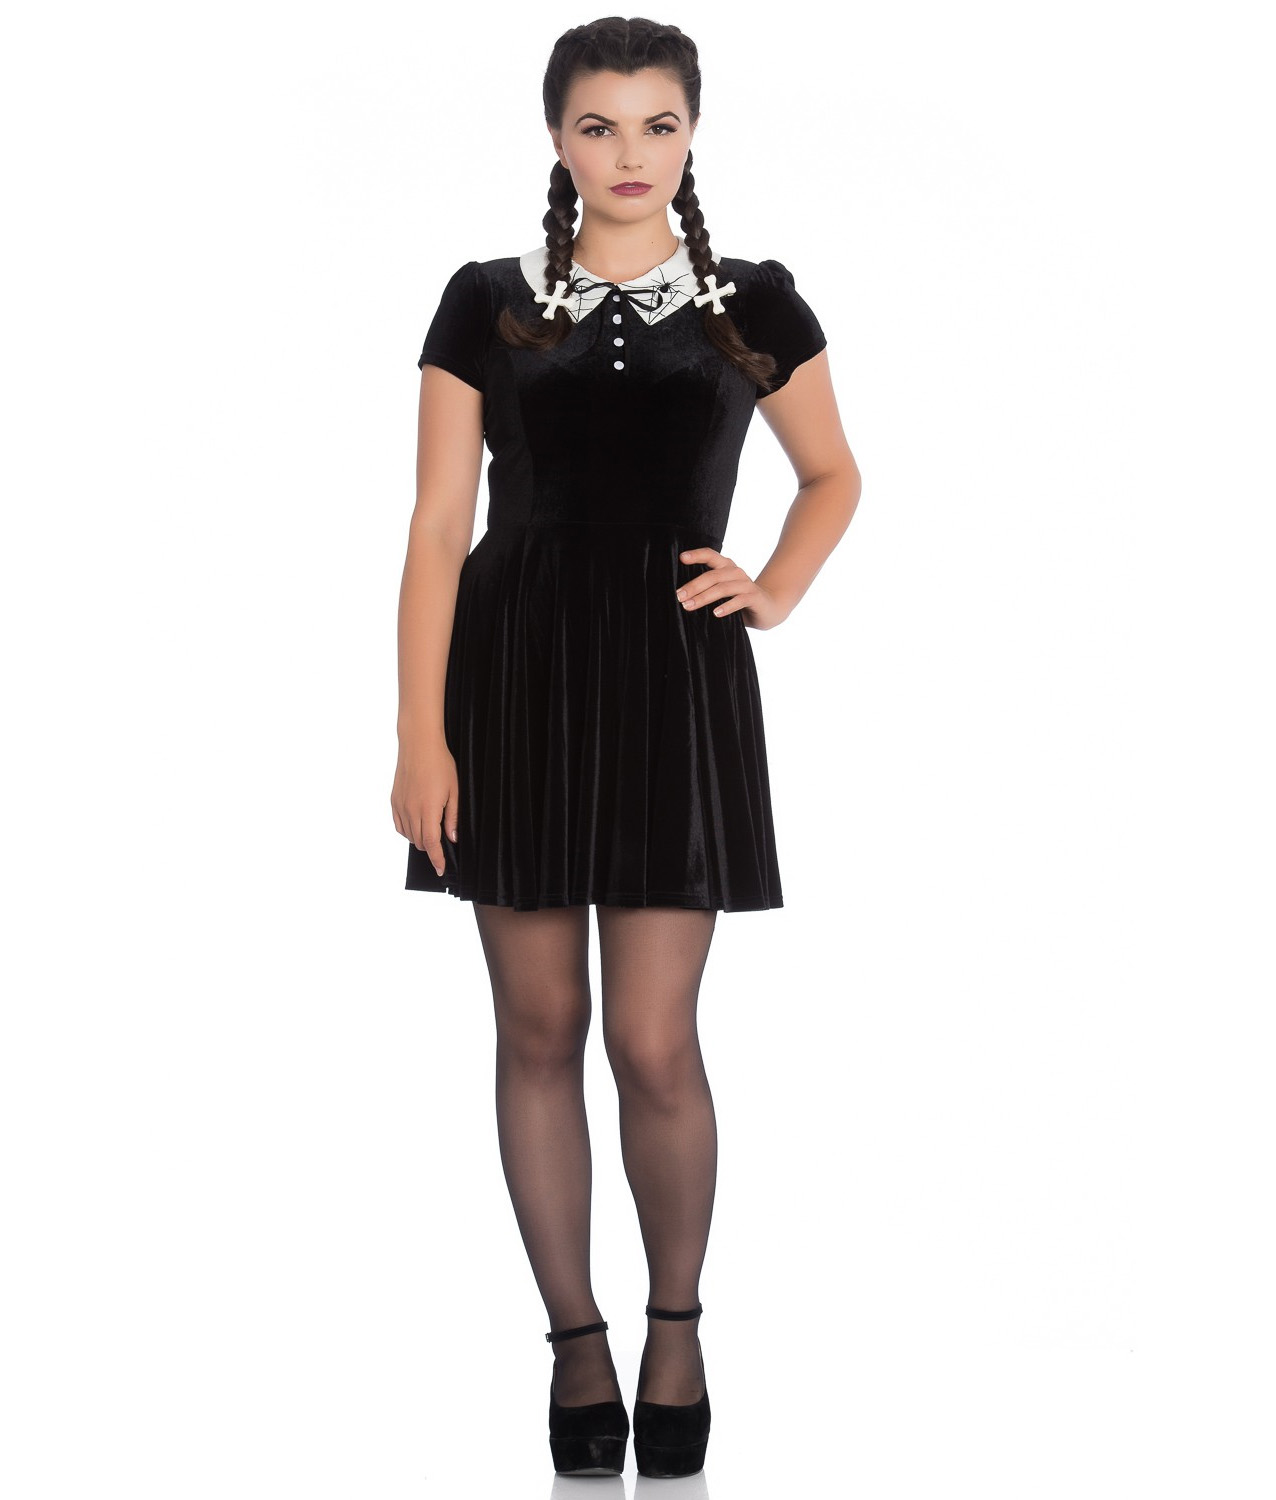 Hell-Bunny-Gothic-Mini-Skater-Dress-MISS-MUFFET-Spiders-Black-Velvet-All-Sizes thumbnail 15